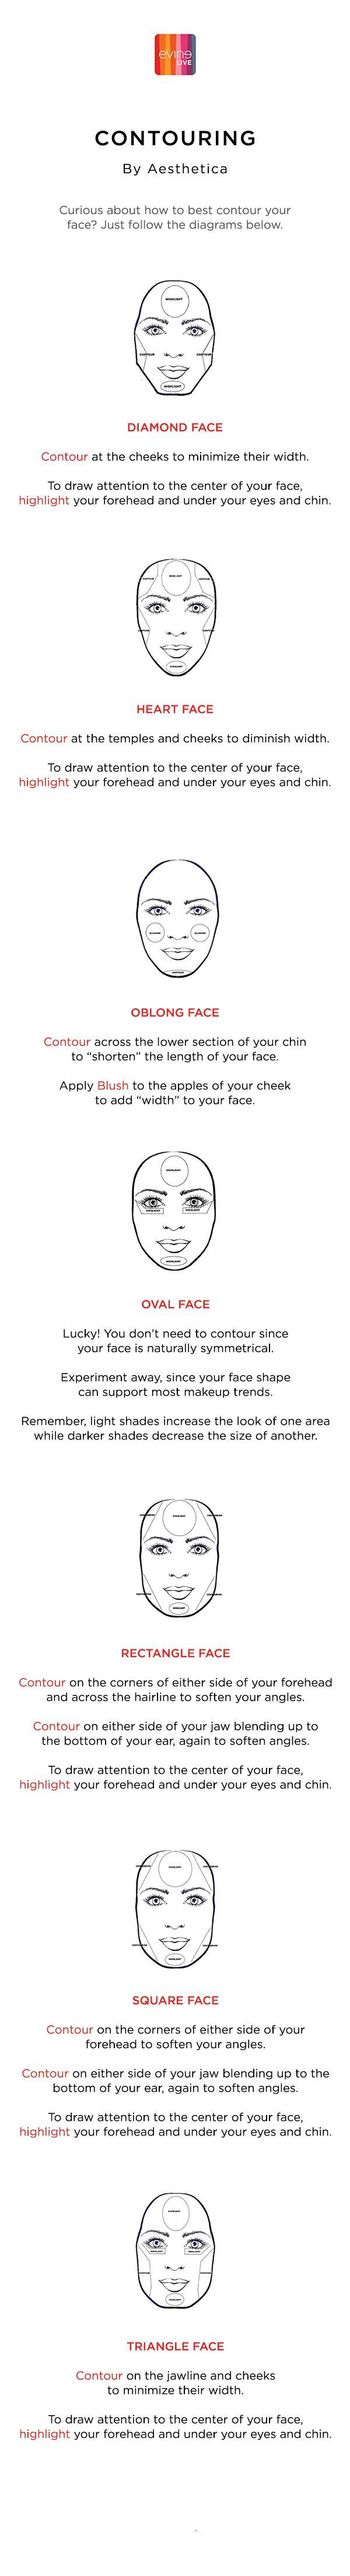 Curious about the best contour for your face? Identify your face shape below & follow the diagrams! Thank you AEsthetica Cosmetics! #EVINELiveBeauty